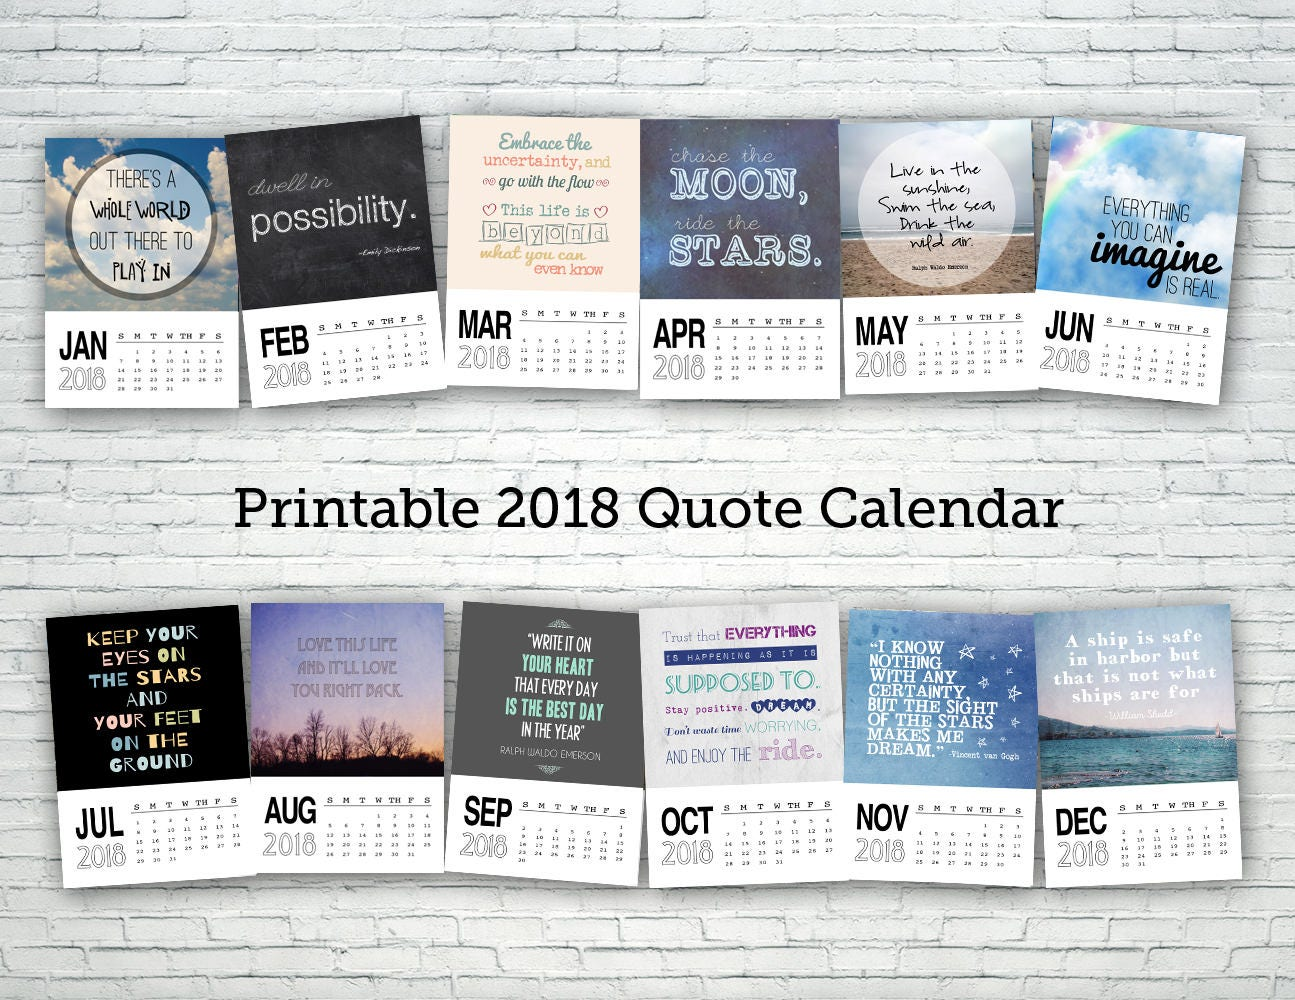 2018 Calendar Inspirational : Printable calendar quote digital